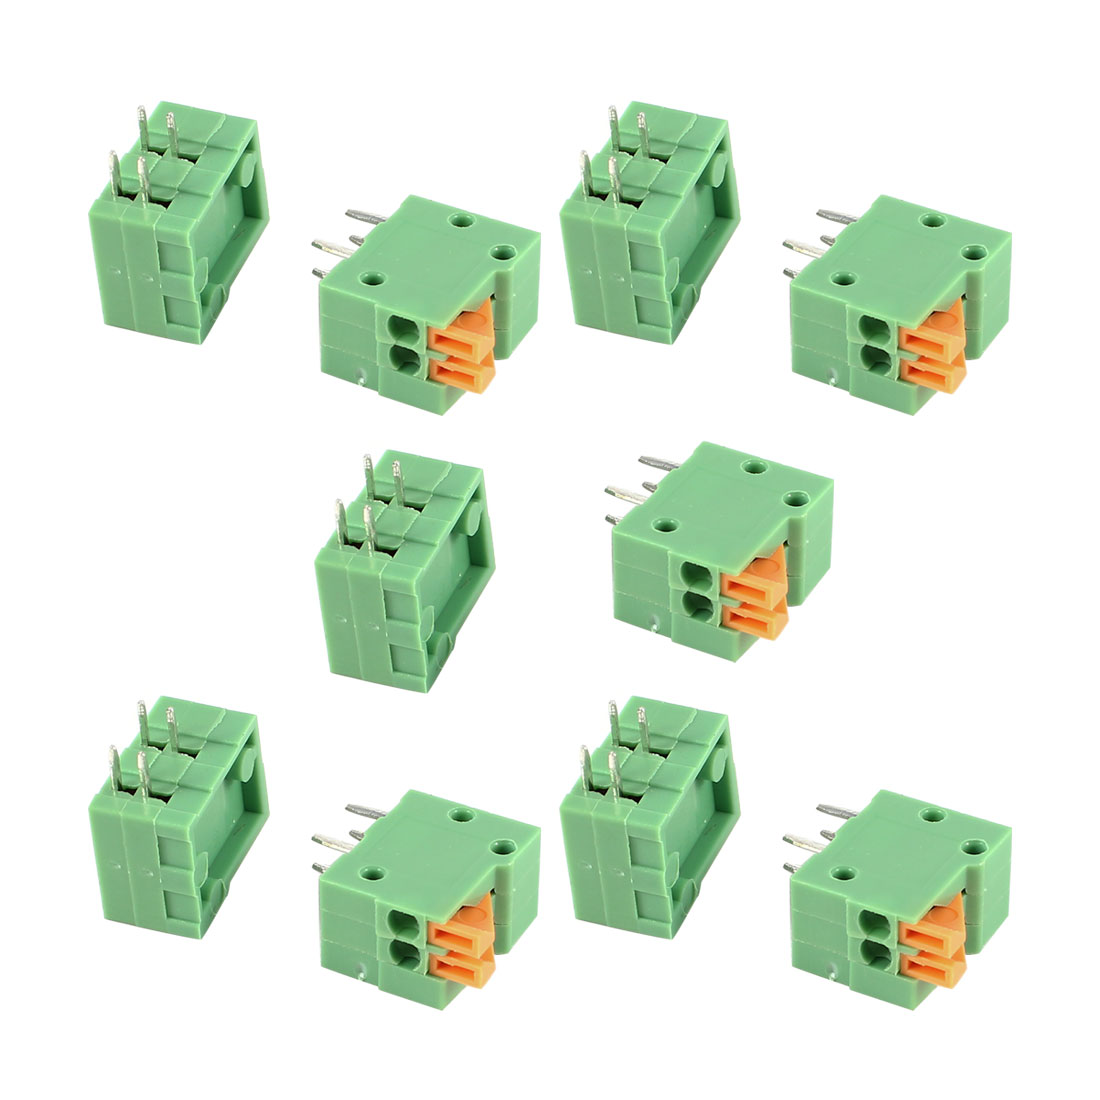 10 Pcs Green KF141R 2Position 2.54mm Pitch 4Pin Spring Terminal Blocks Connectors 300V 10A